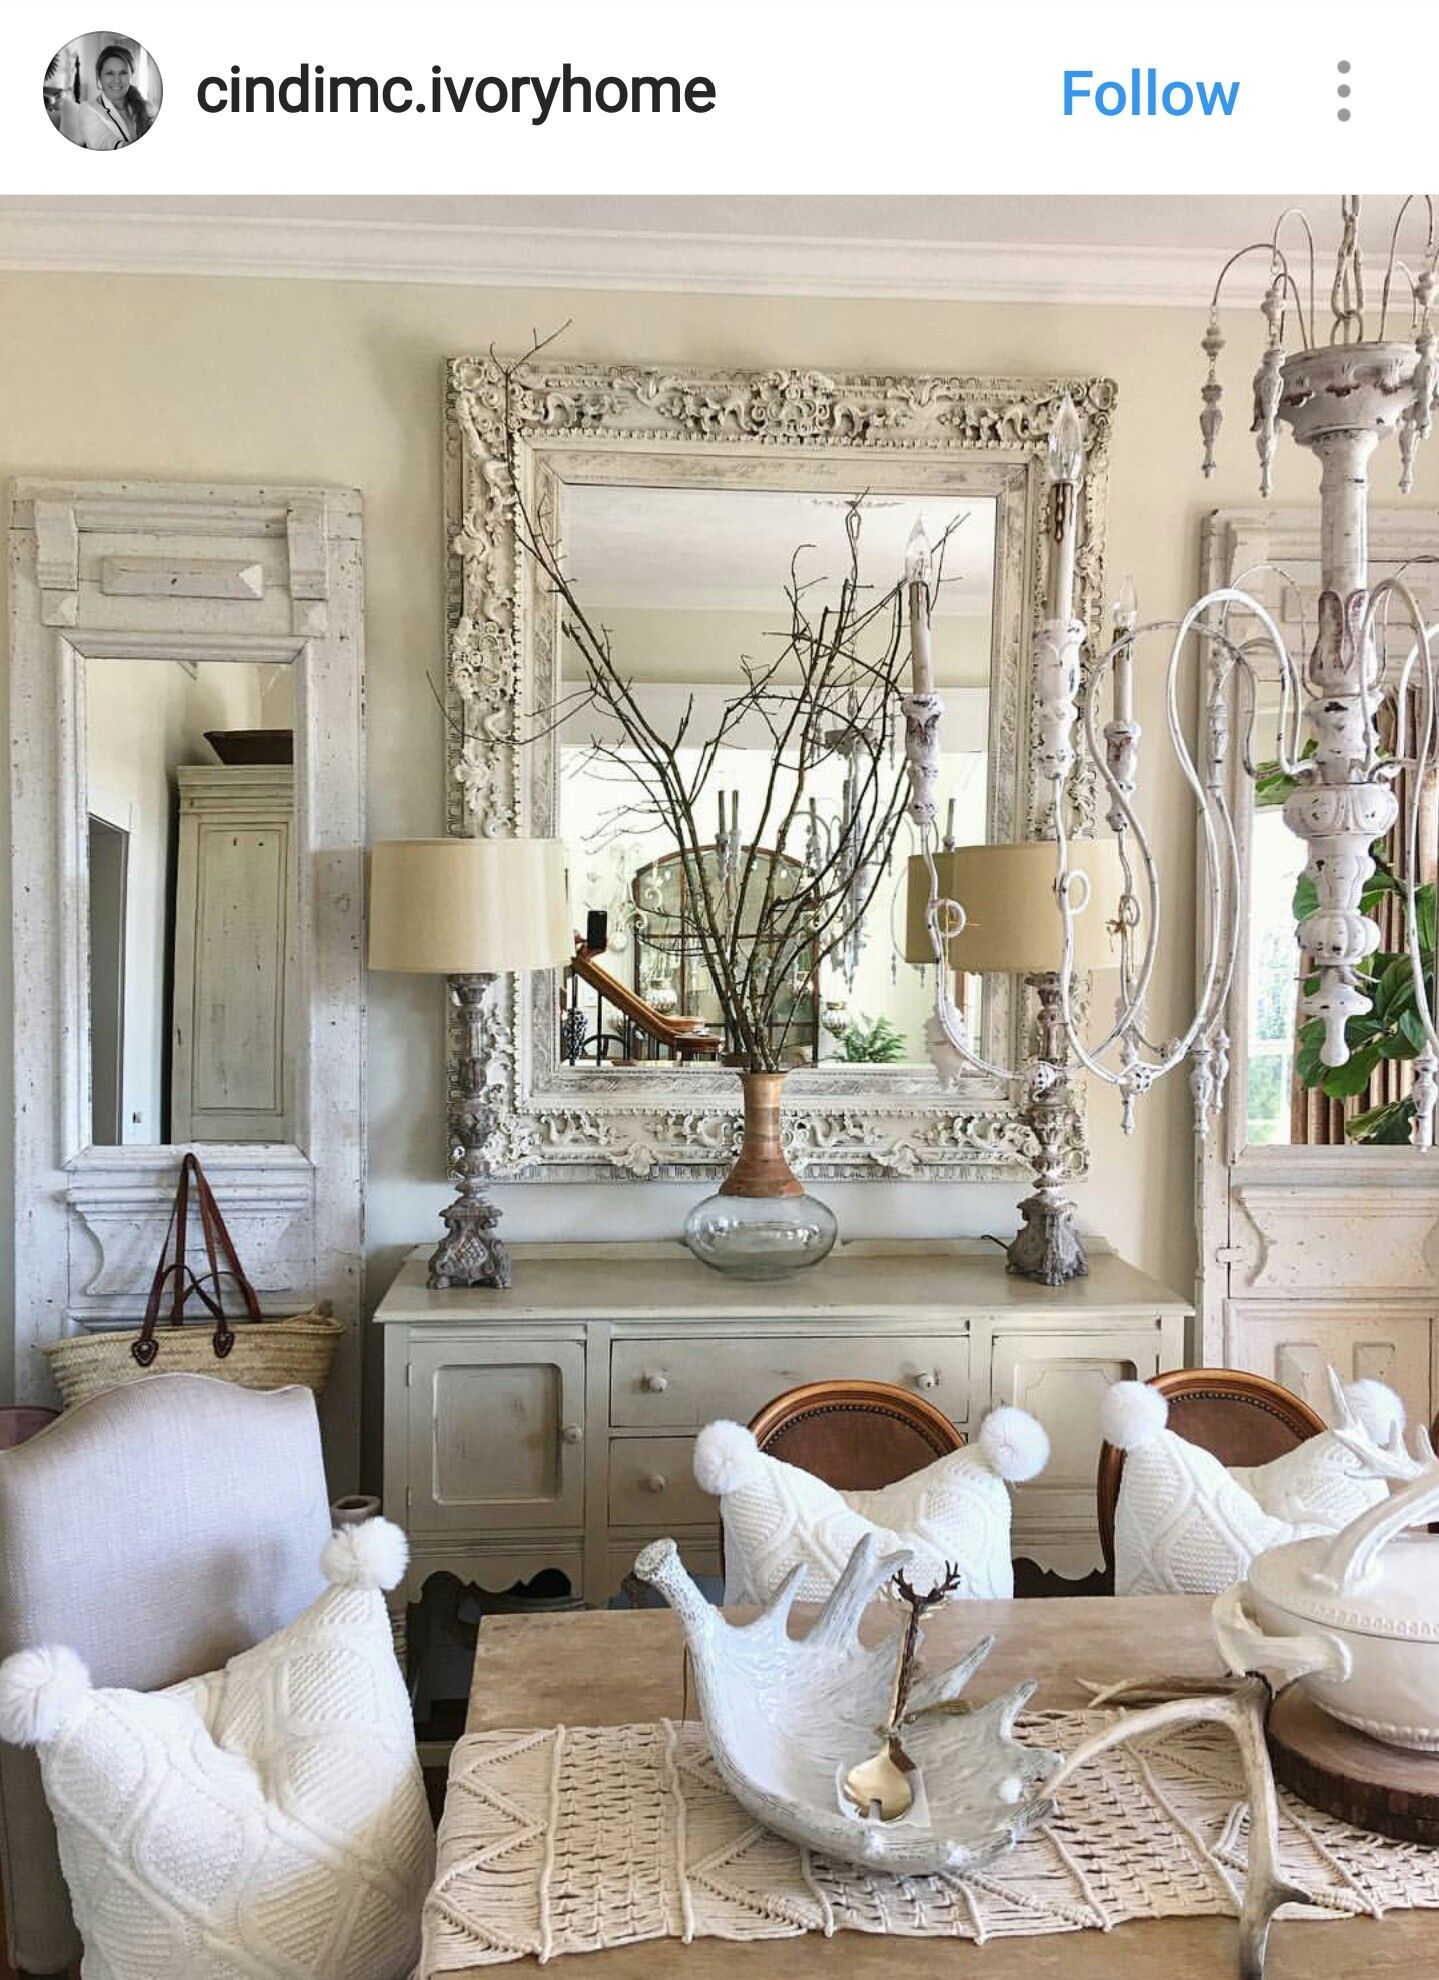 Pin By Candy Barstow On Decoration Fascination Elegant Living Room Decor French Country Interiors Elegant Living Room